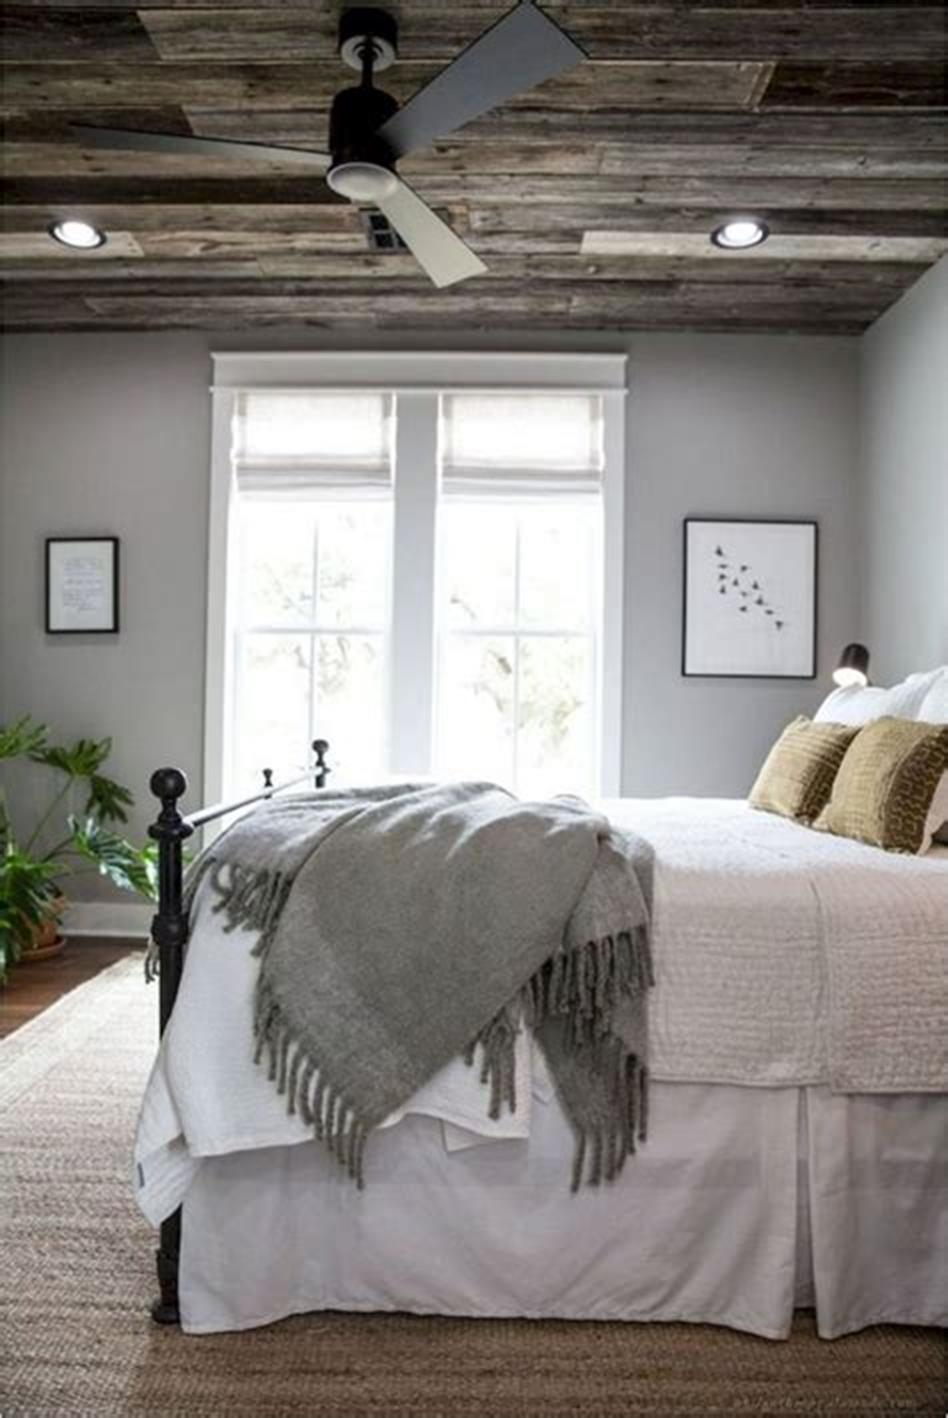 20 Stunning Bedroom Paint Ideas To Enhance The Color Of: 48 Stunning Farmhouse Master Bedroom Design Ideas 2019 20